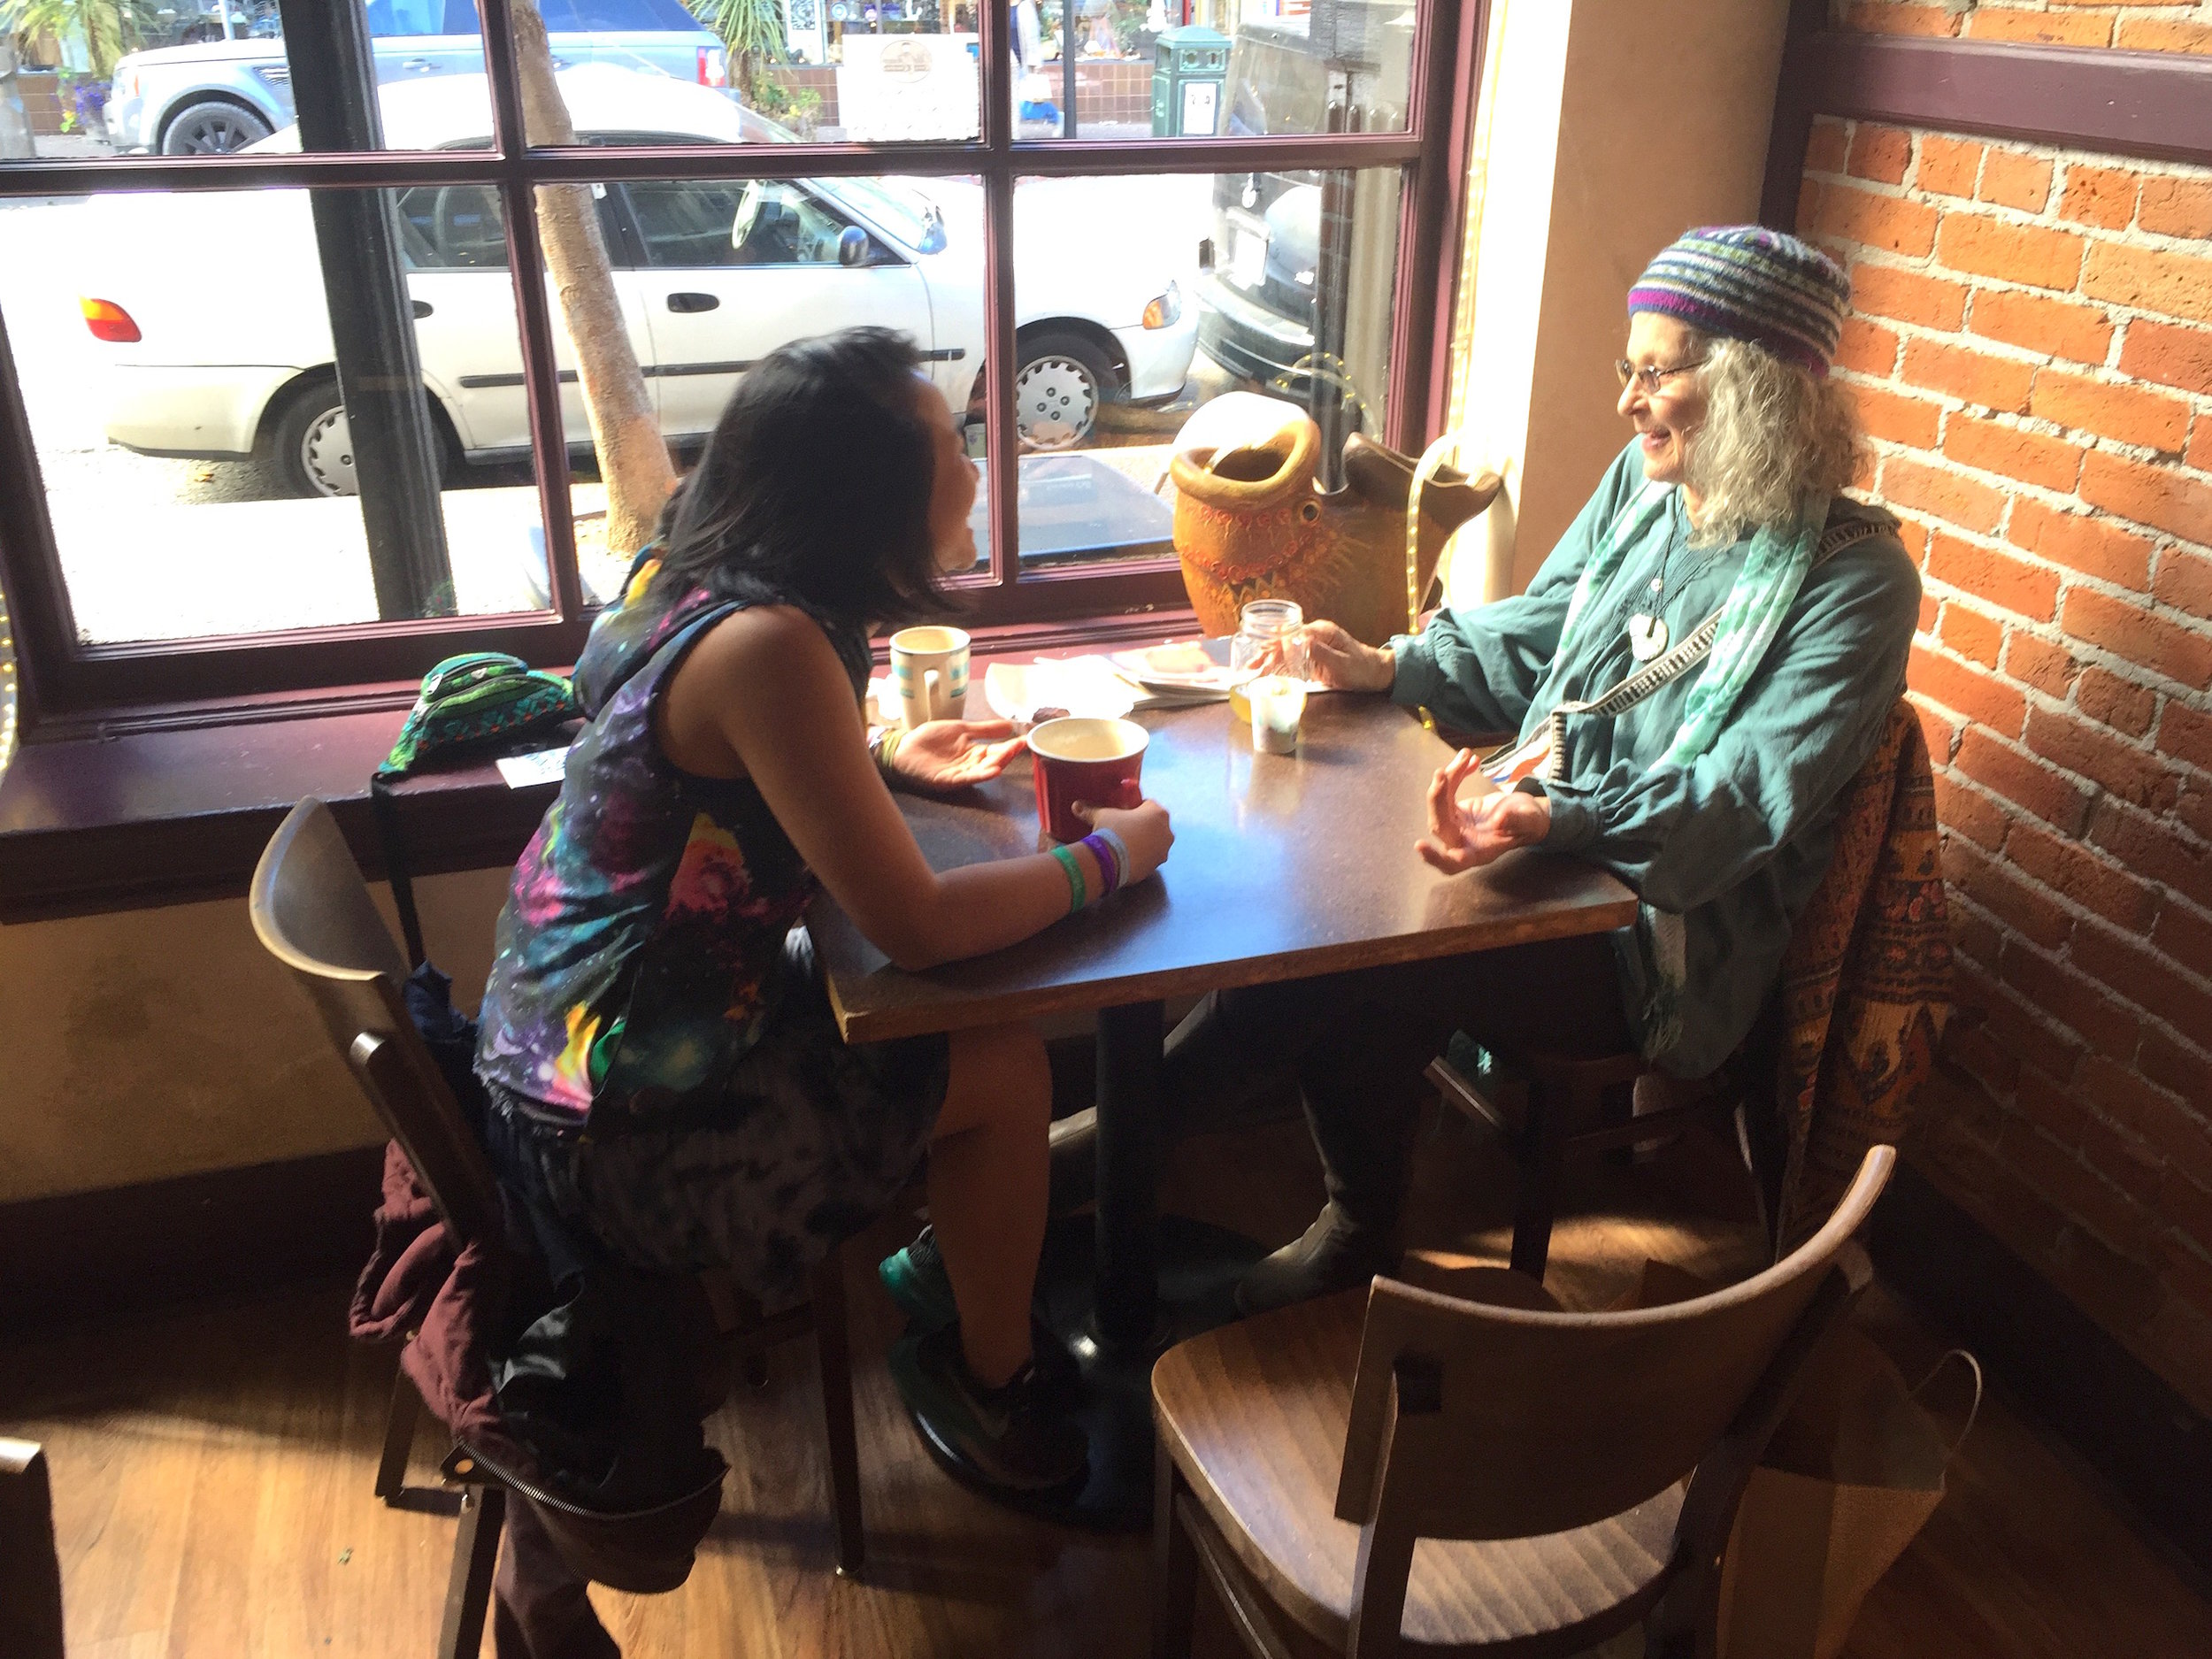 Linda and I having a lovely coffee date interview